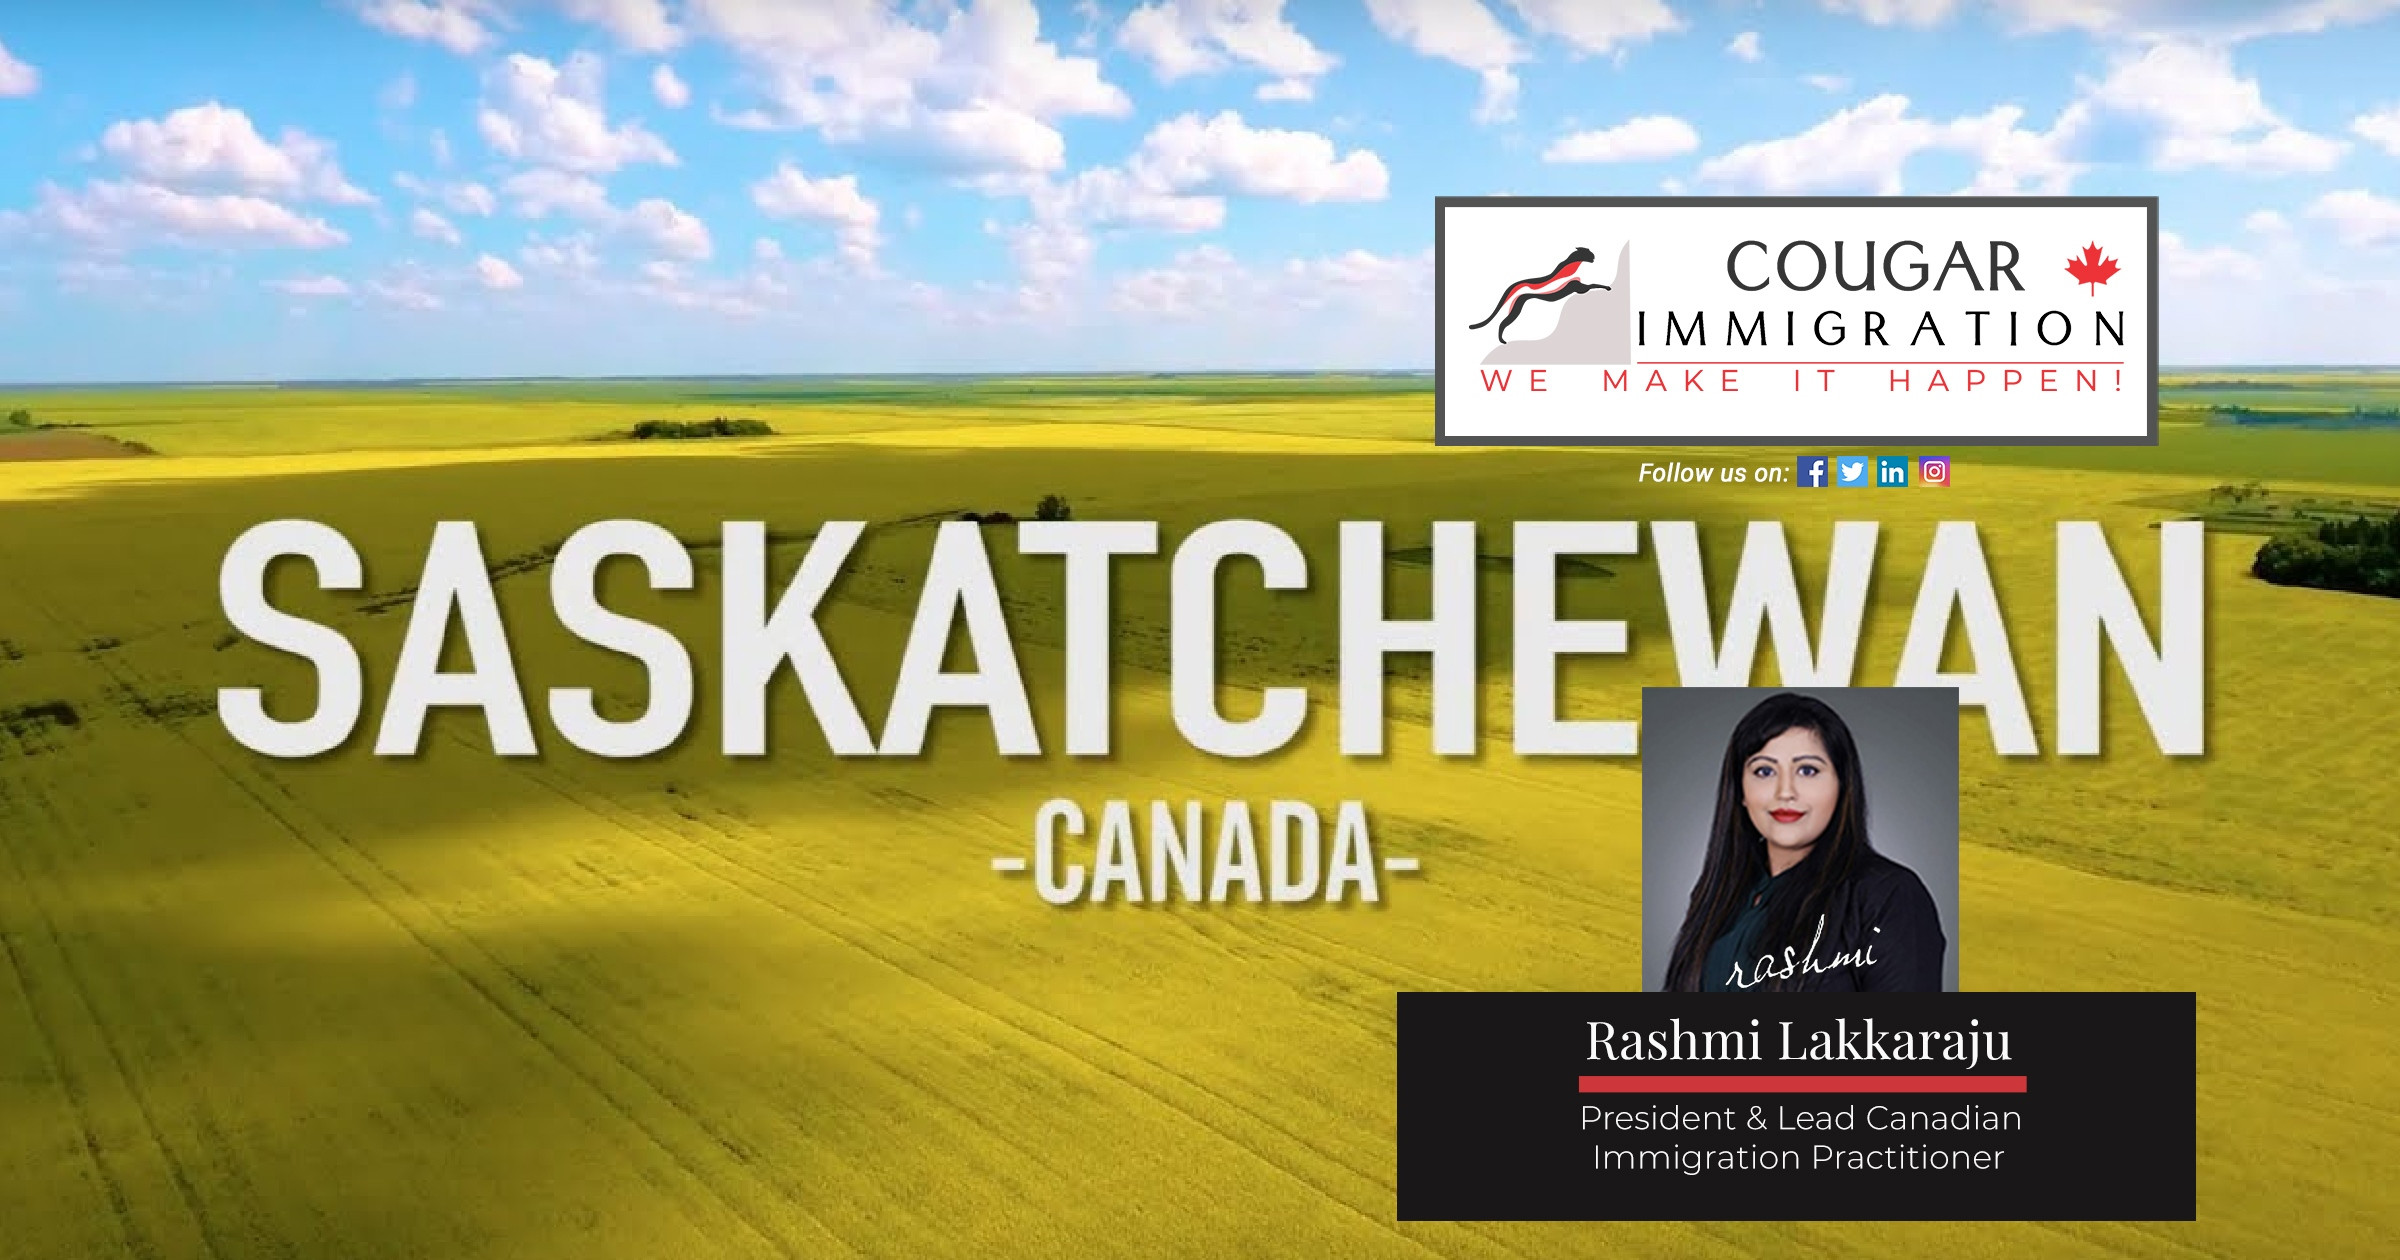 Saskatchewan Complications 525 Invitations By means of 2 Streams In Unusual Expression of Curiosity Procedure thumbnail